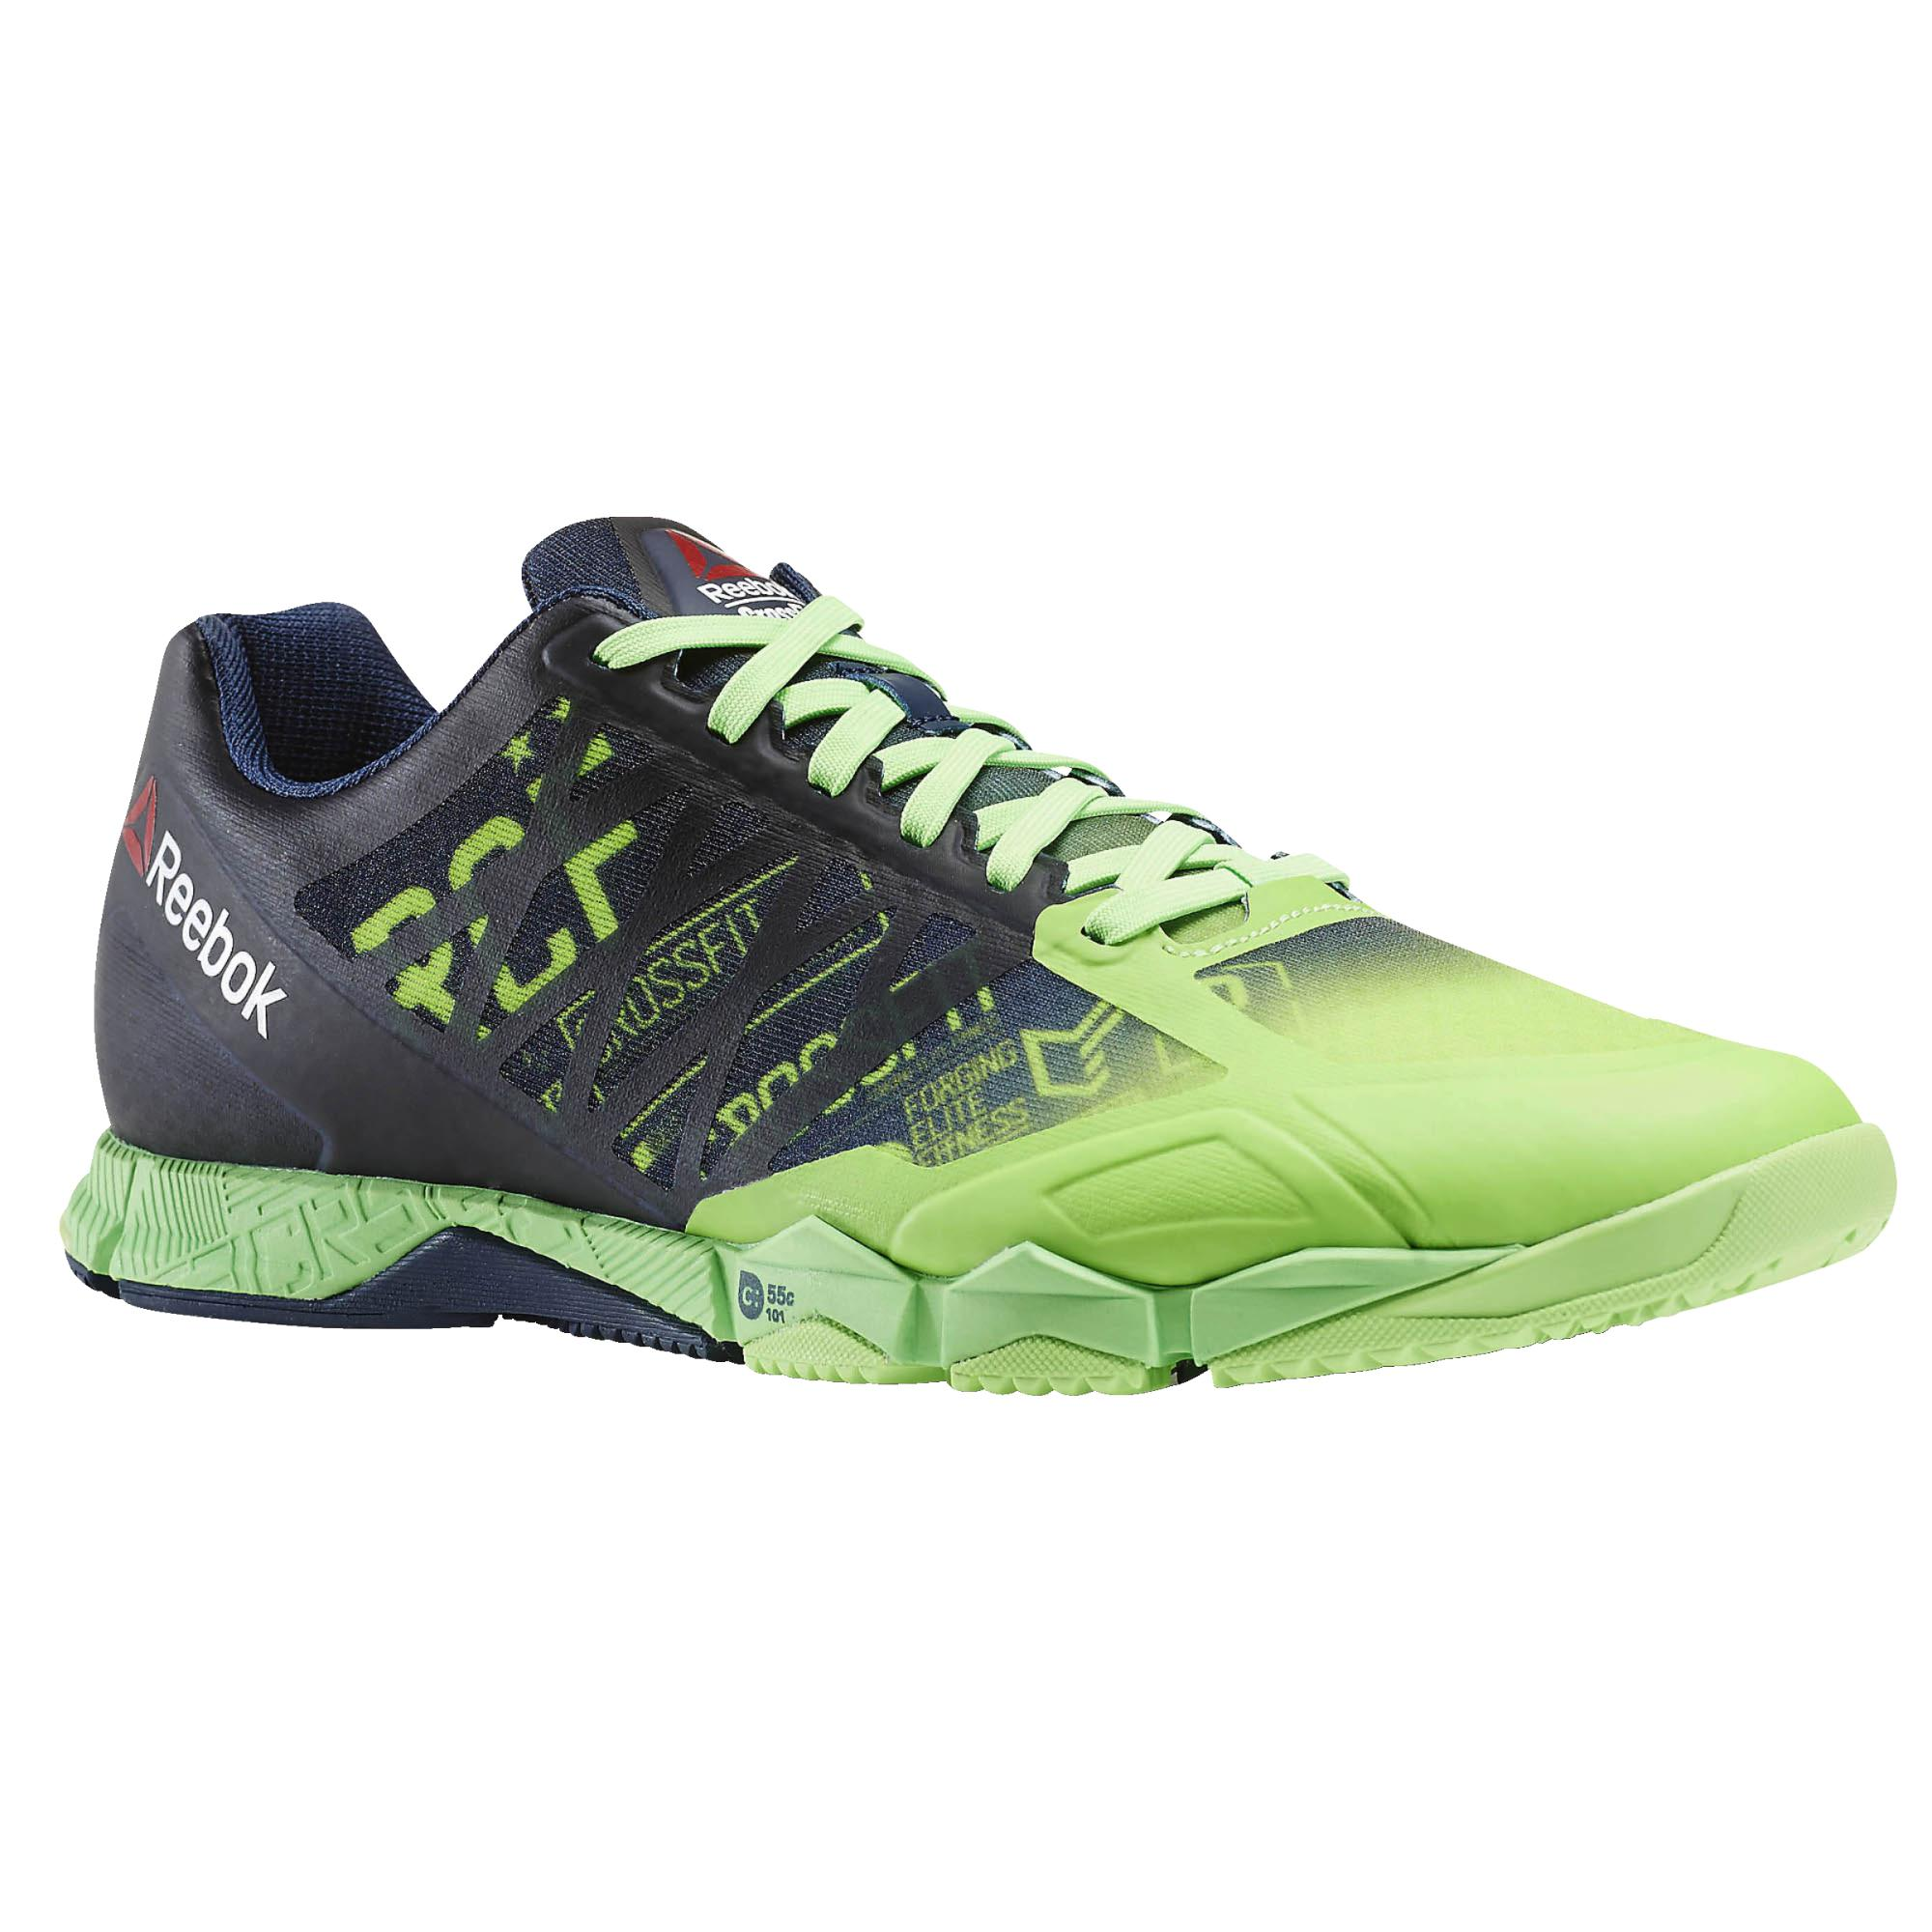 Pas R gt; Off68 Chaussure Ductions Crossfit Reebok Cher fn1Zq